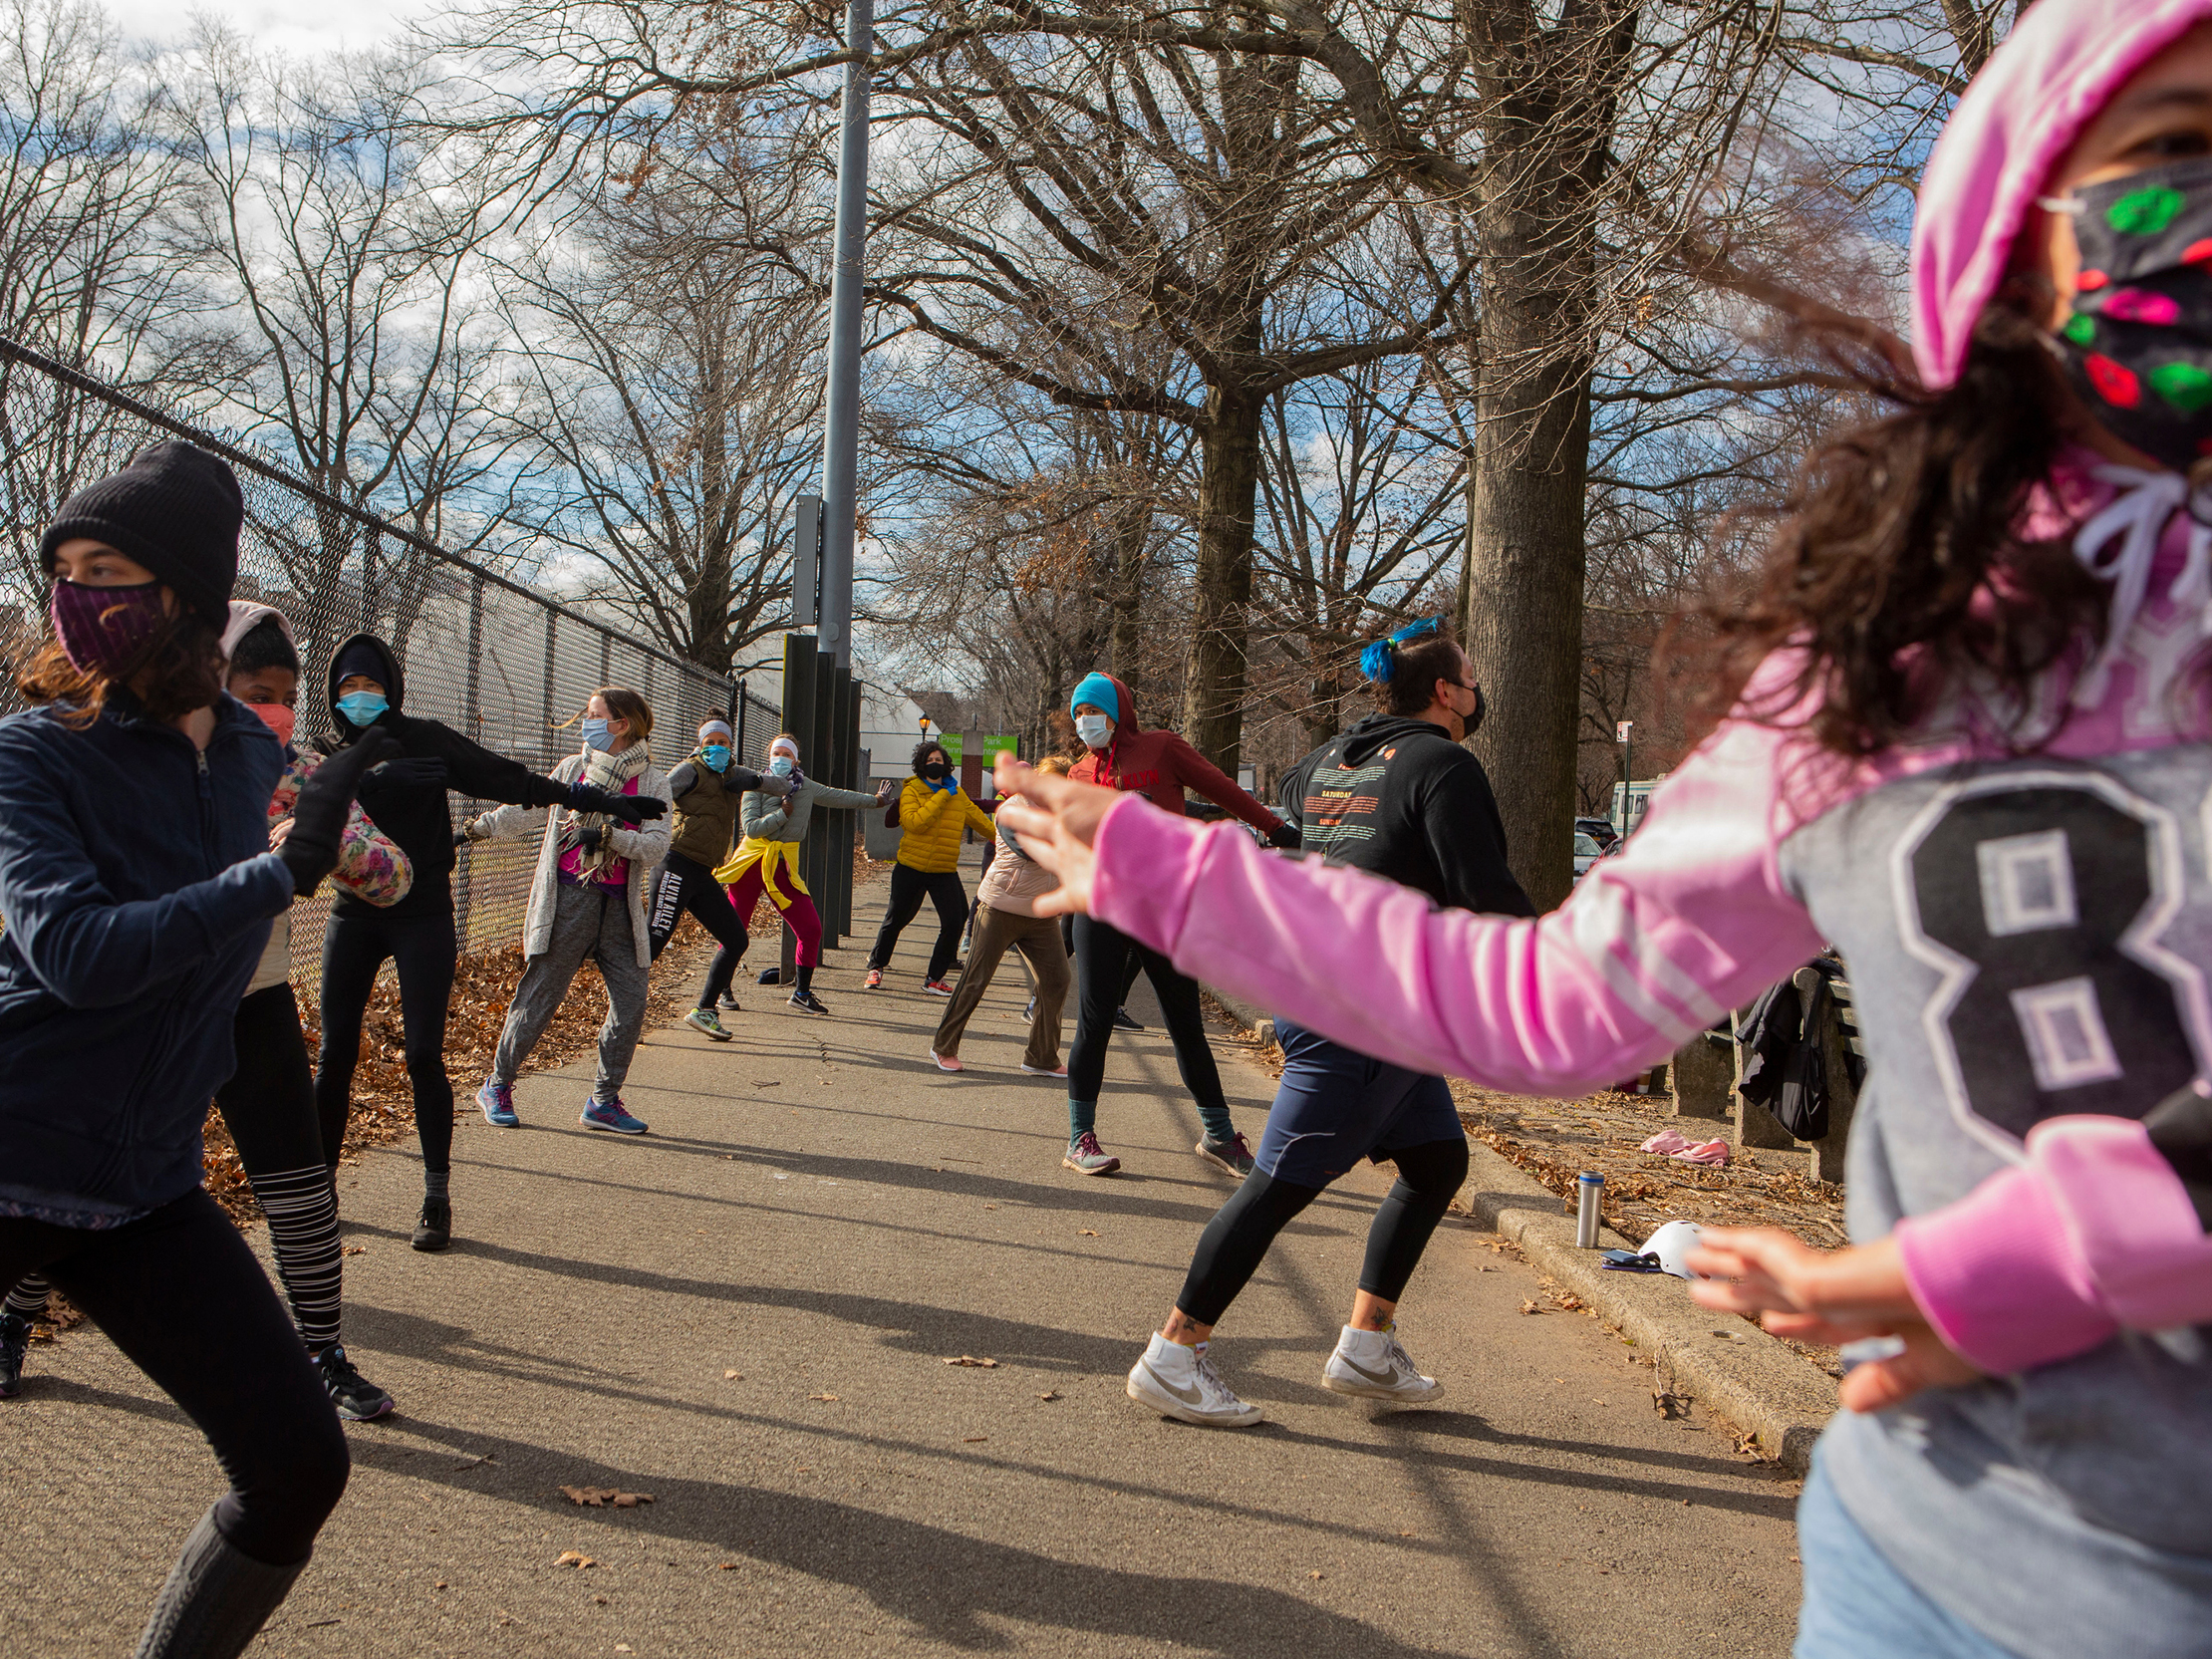 Michael Aredes teaches a Zumba class outside Prospect Park in  Brooklyn. About 10 women bundled up to join the socially distant exercise class on a recent Saturday.